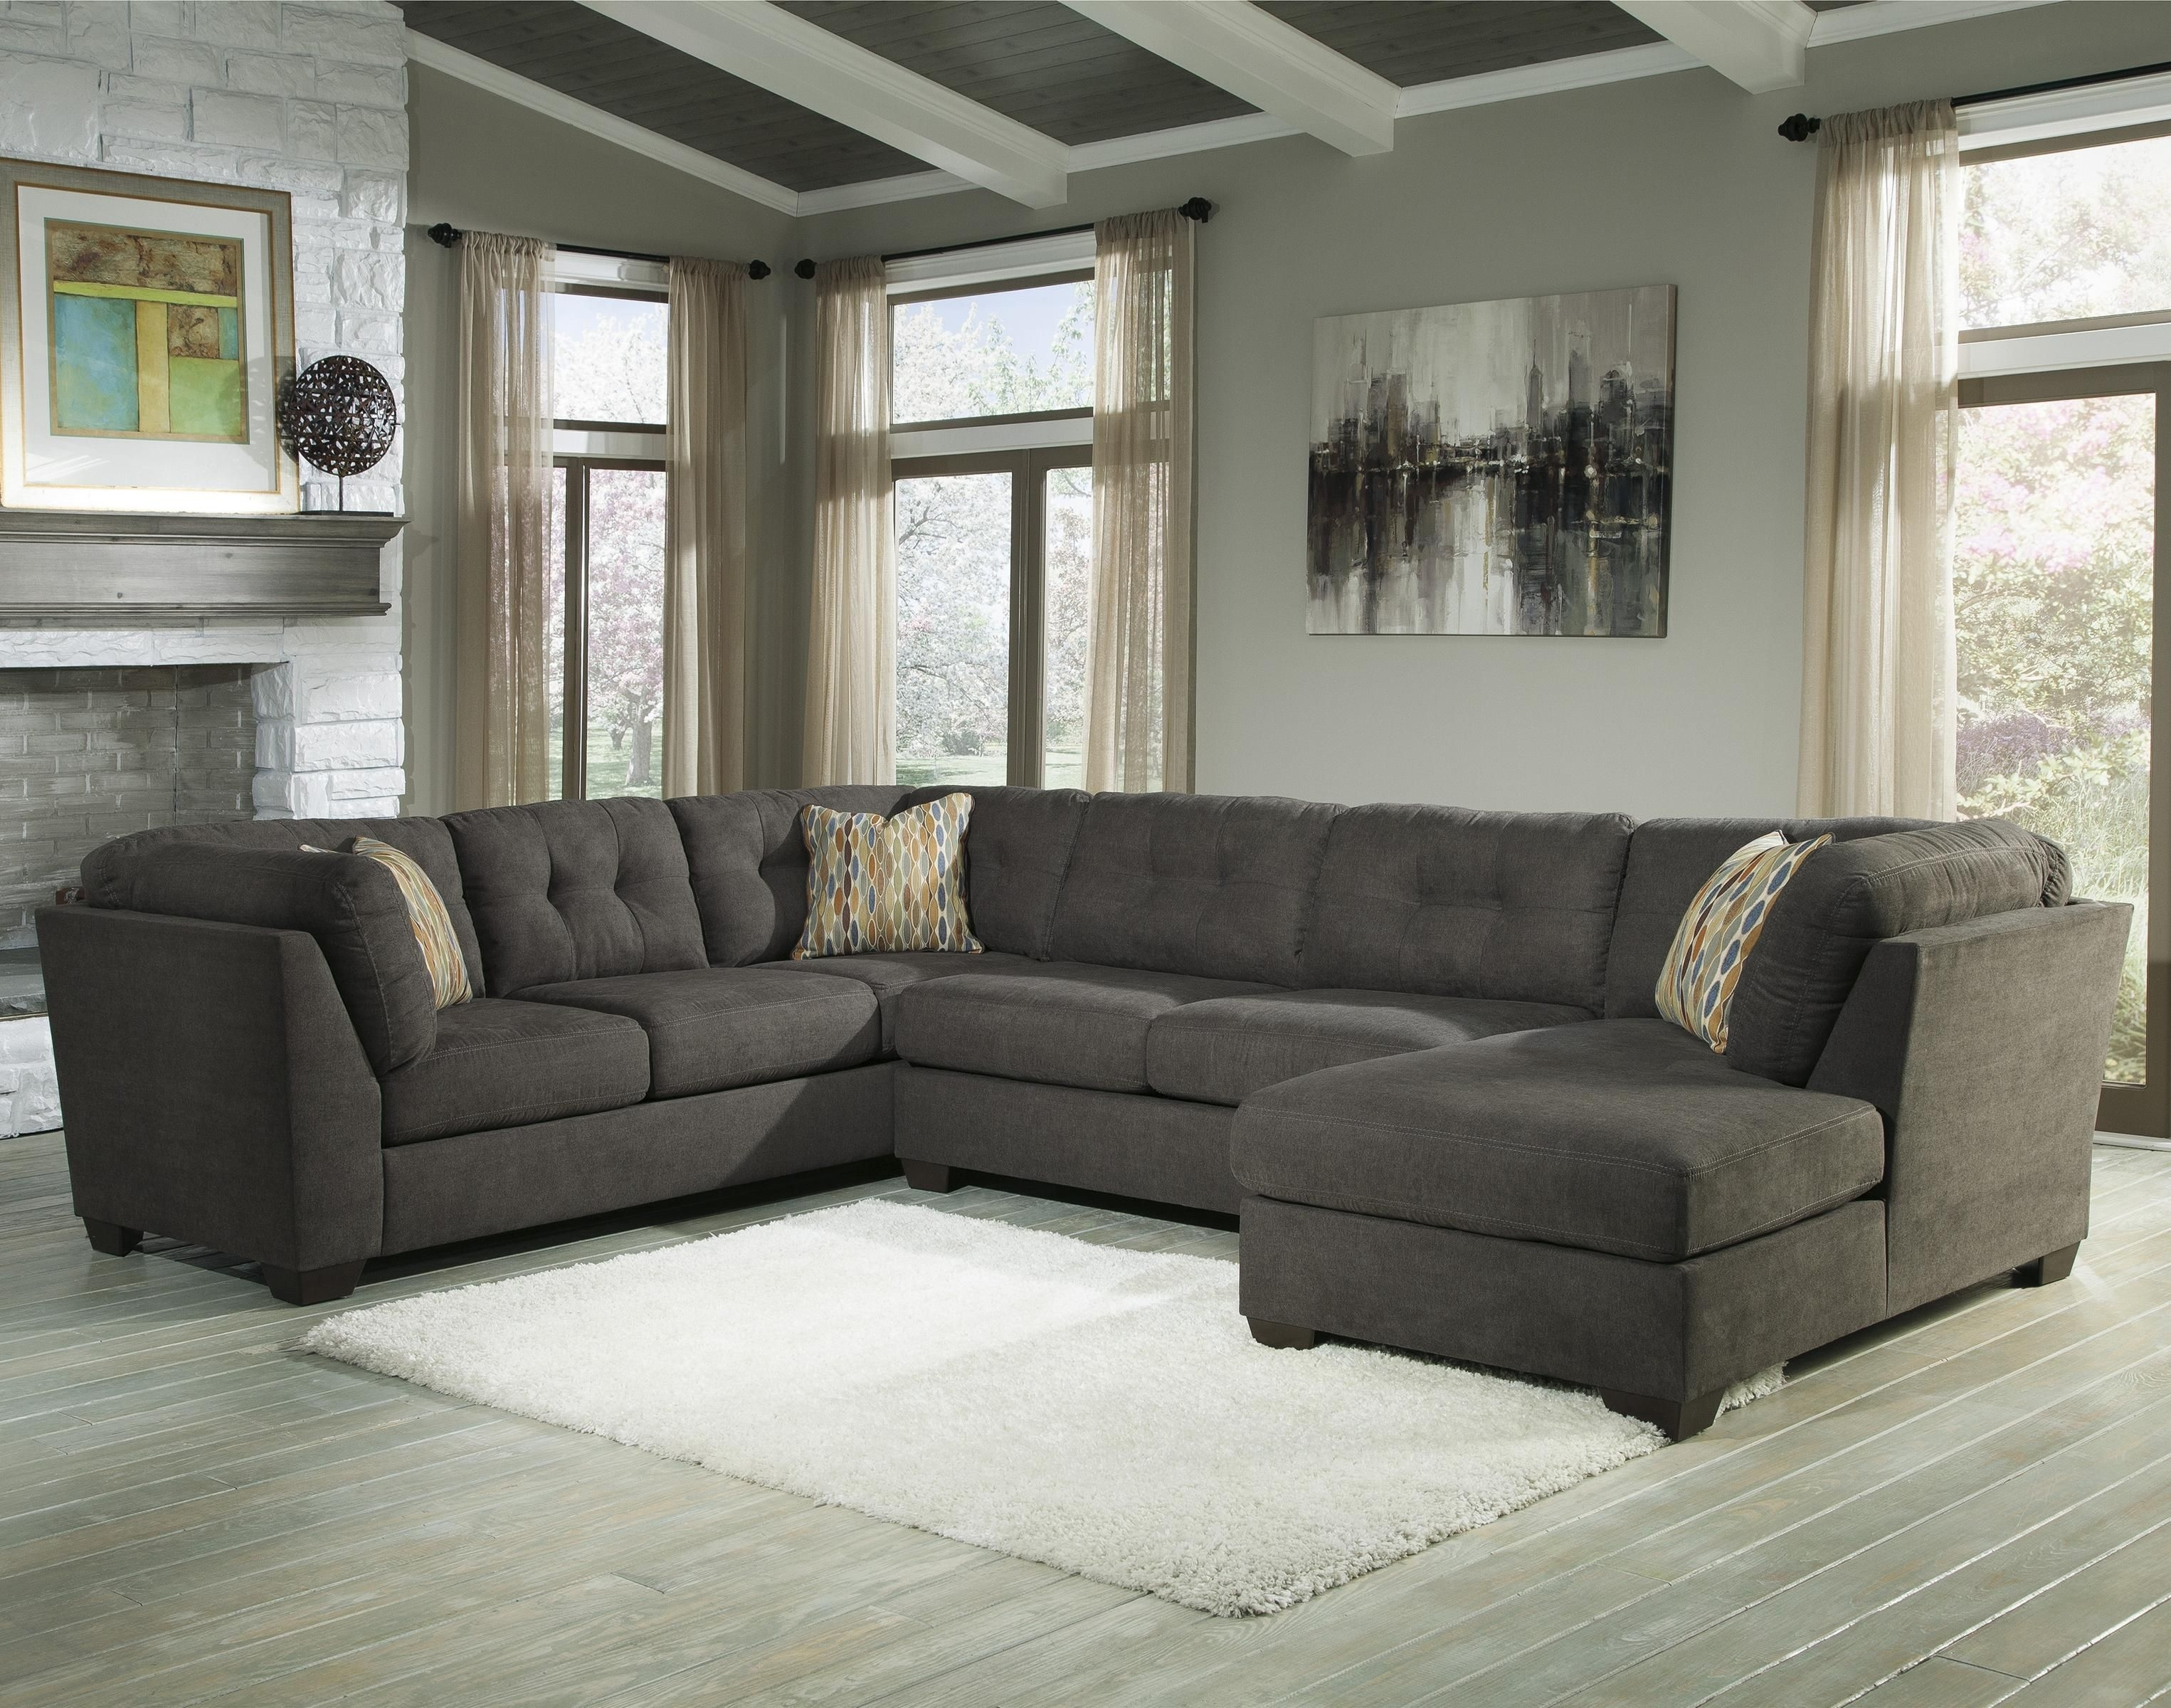 Delta City – Steel 3 Piece Modular Sectional With Right Chaise For Nico Grey Sectionals With Left Facing Storage Chaise (View 14 of 25)